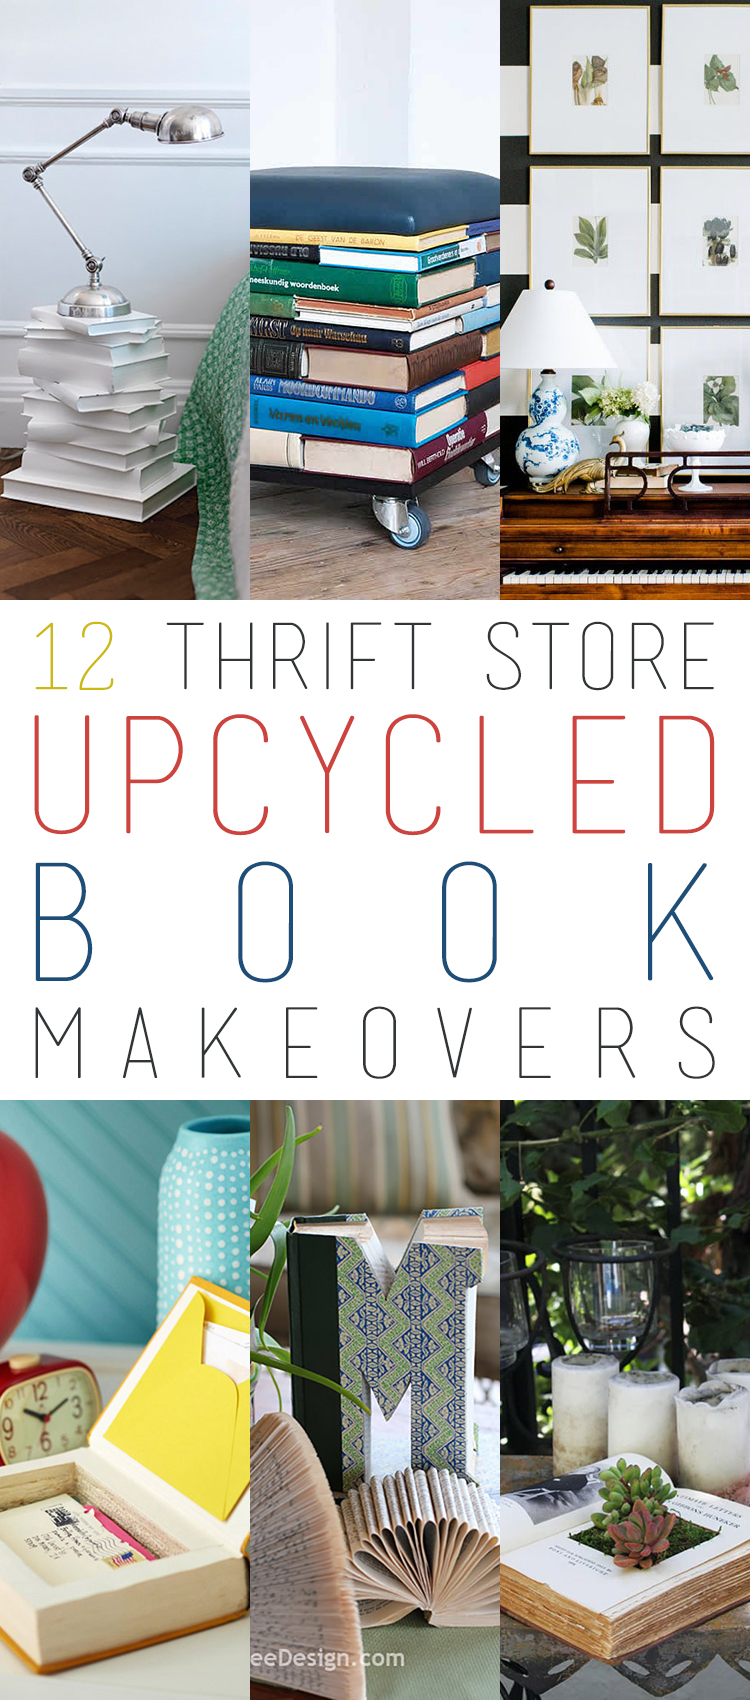 12 Thrift Store Upcycled Book Makeovers The Cottage Market